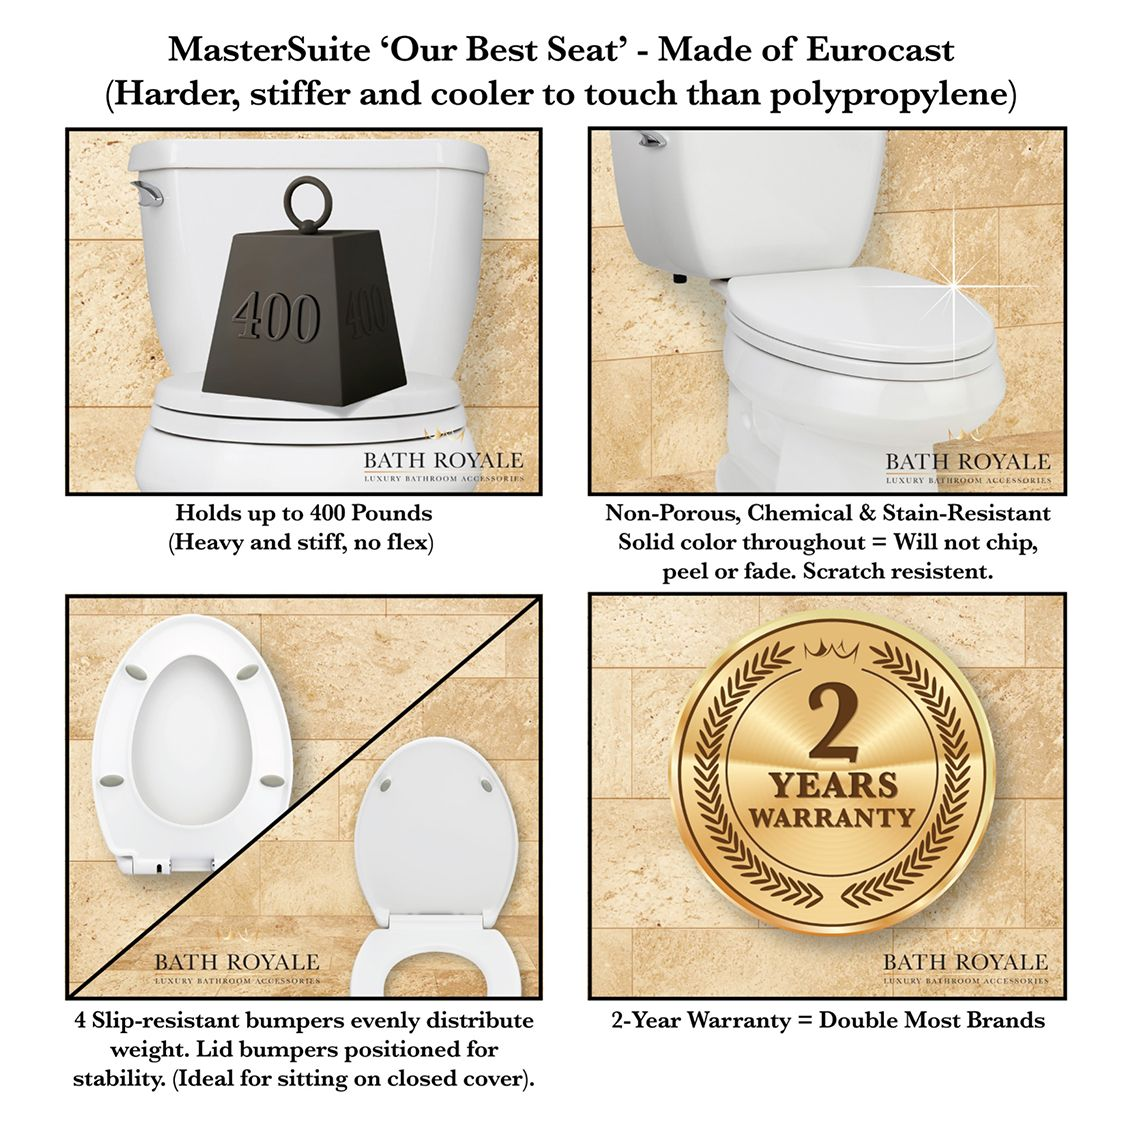 MasterSuite - Our Best Seat - Made of Eurocast for a harder, stiffer toilet seat